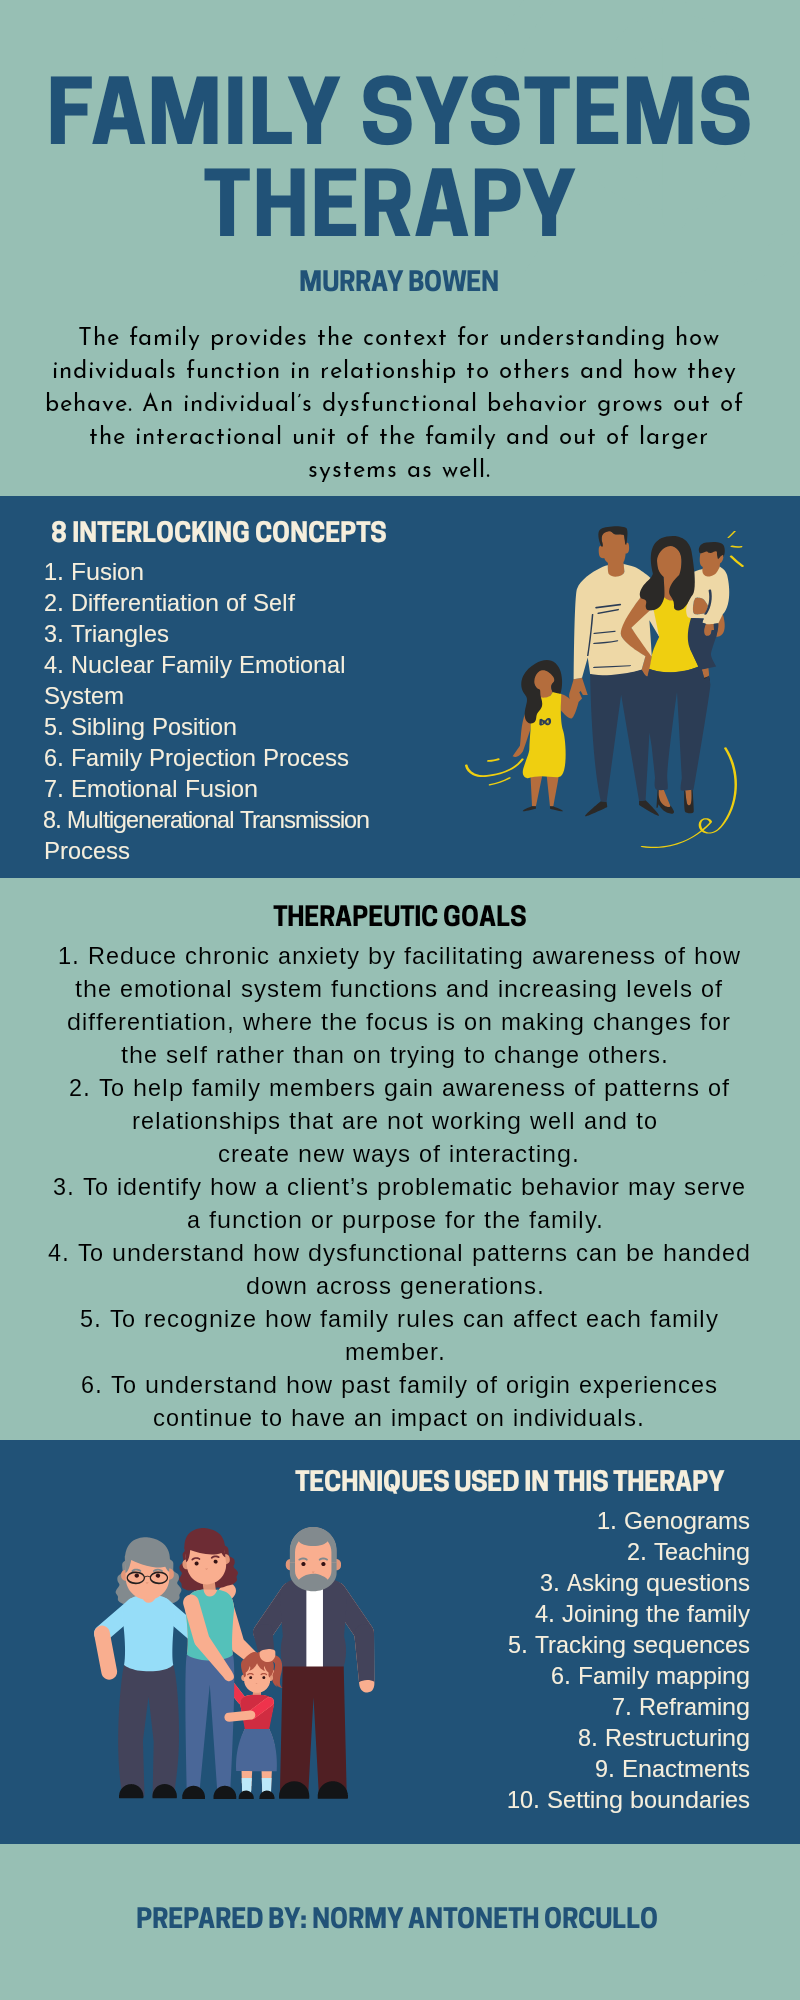 Family Systems Therapy Family Therapy Activities Family Therapy Techniques Family Systems